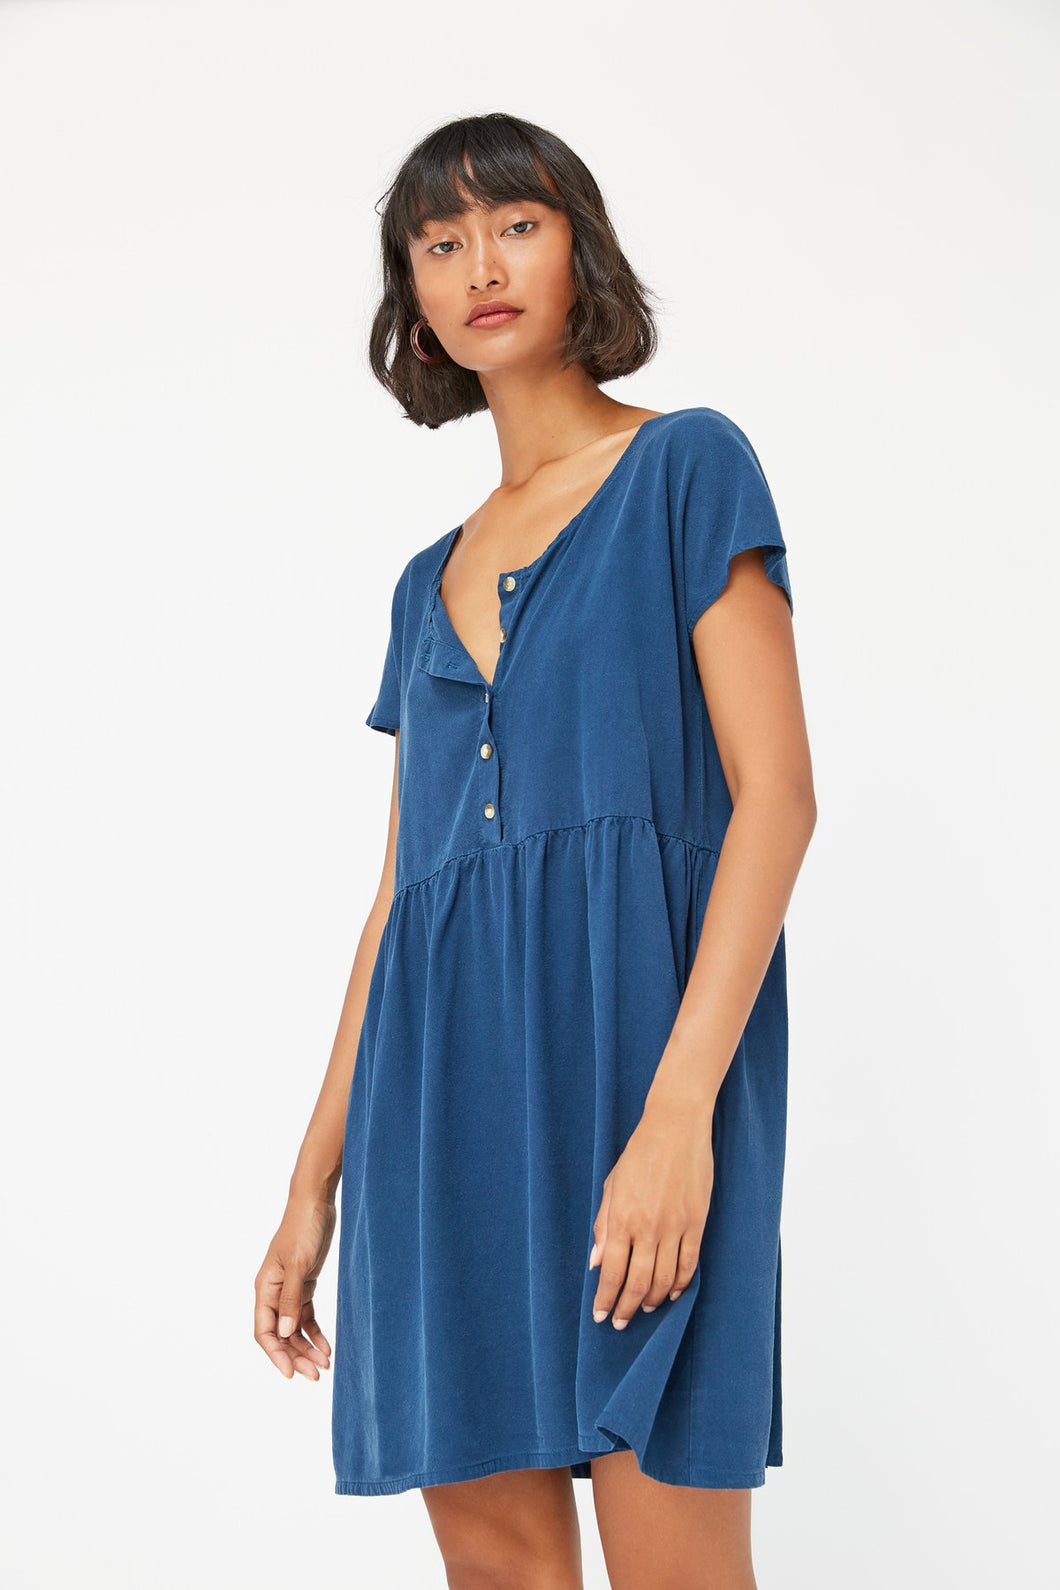 Lacausa Buena Mini Dress / Sapphire